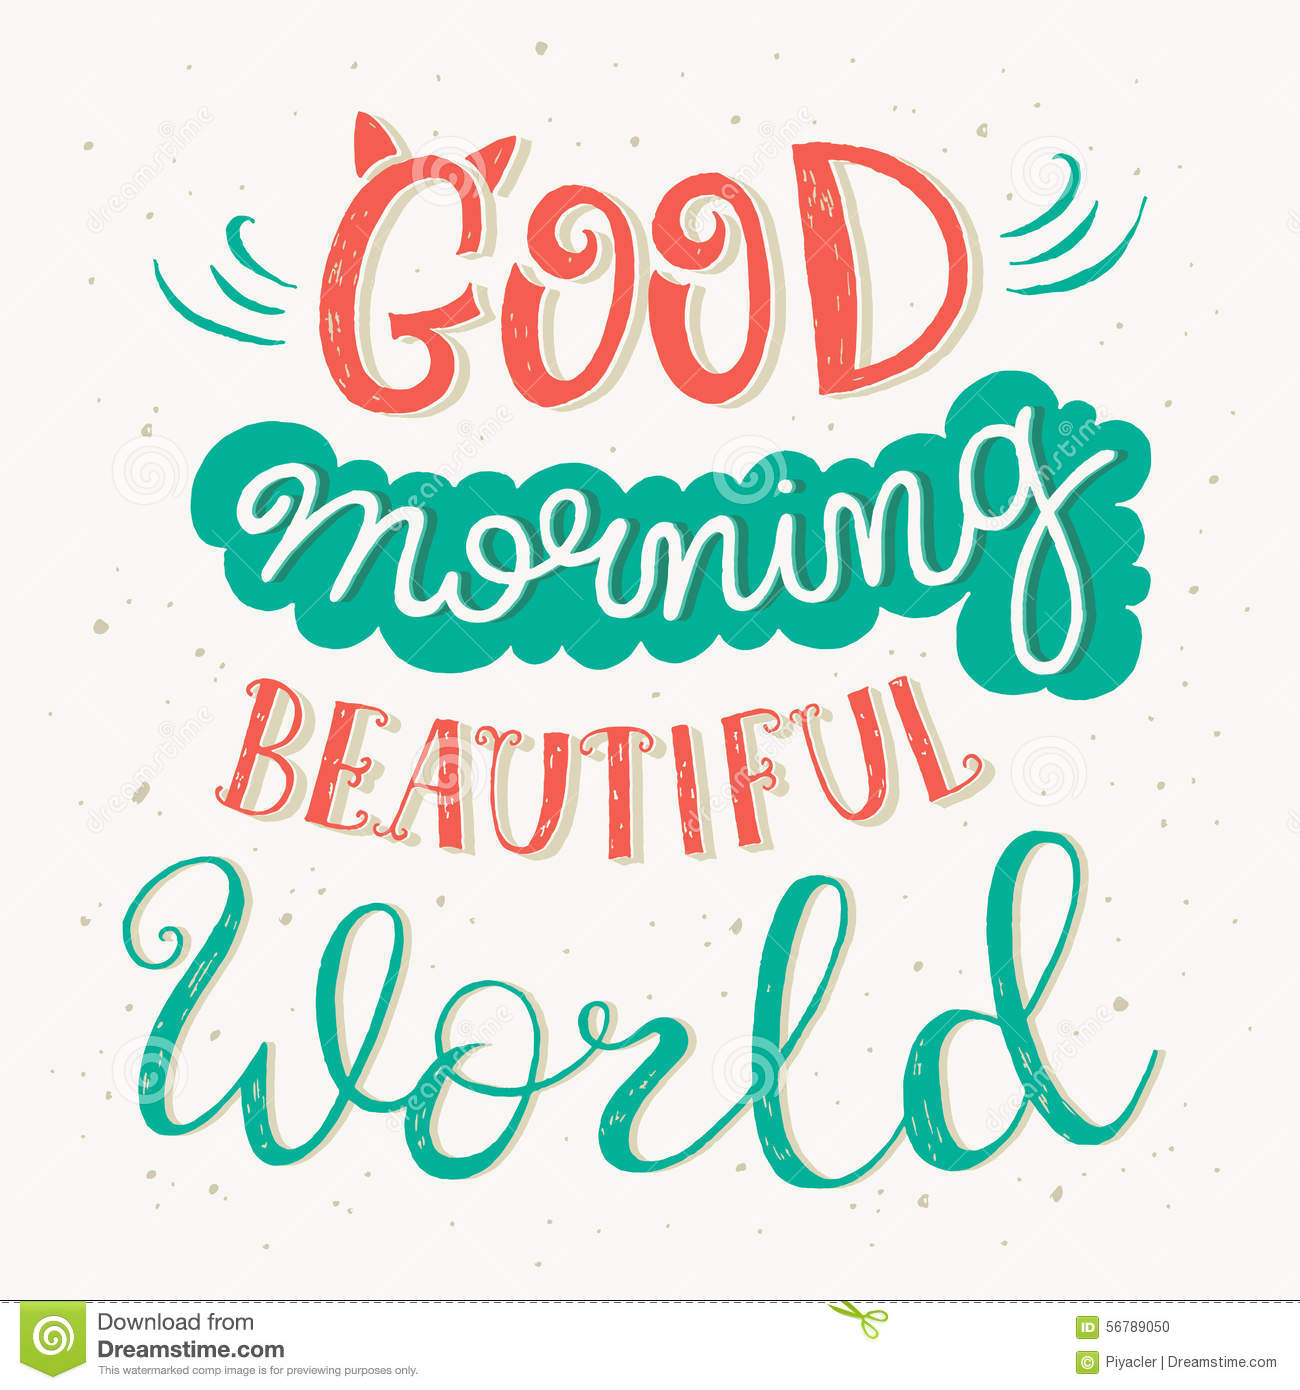 Good Morning Beautiful World : Good morning beautiful world quote stock vector image